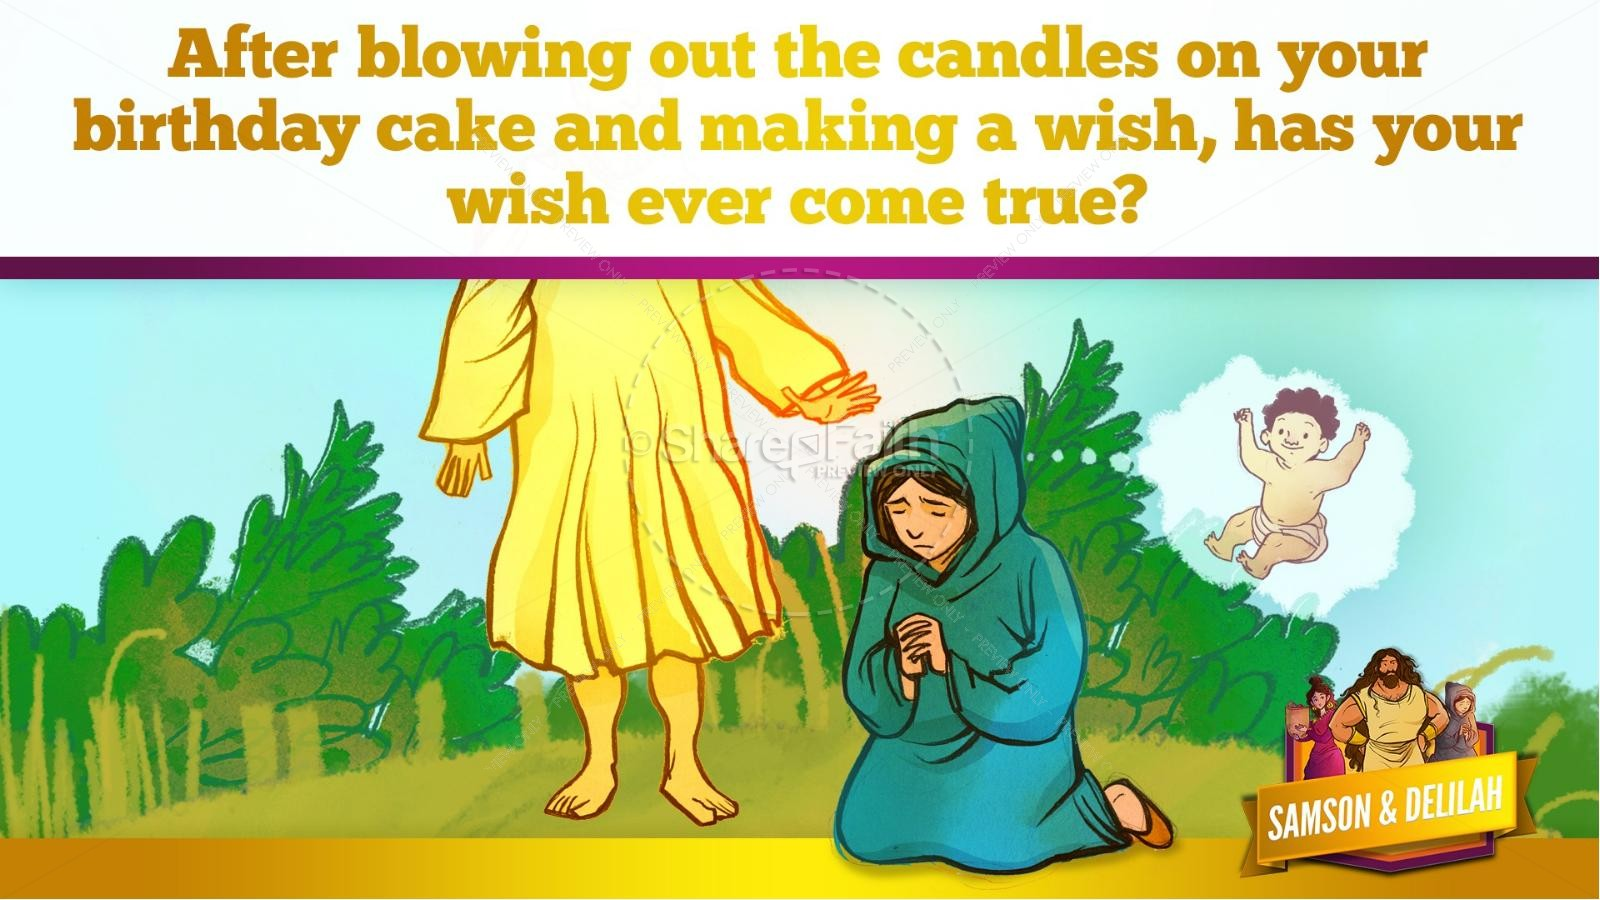 Samson and Delilah Kids Bible Stories | slide 26